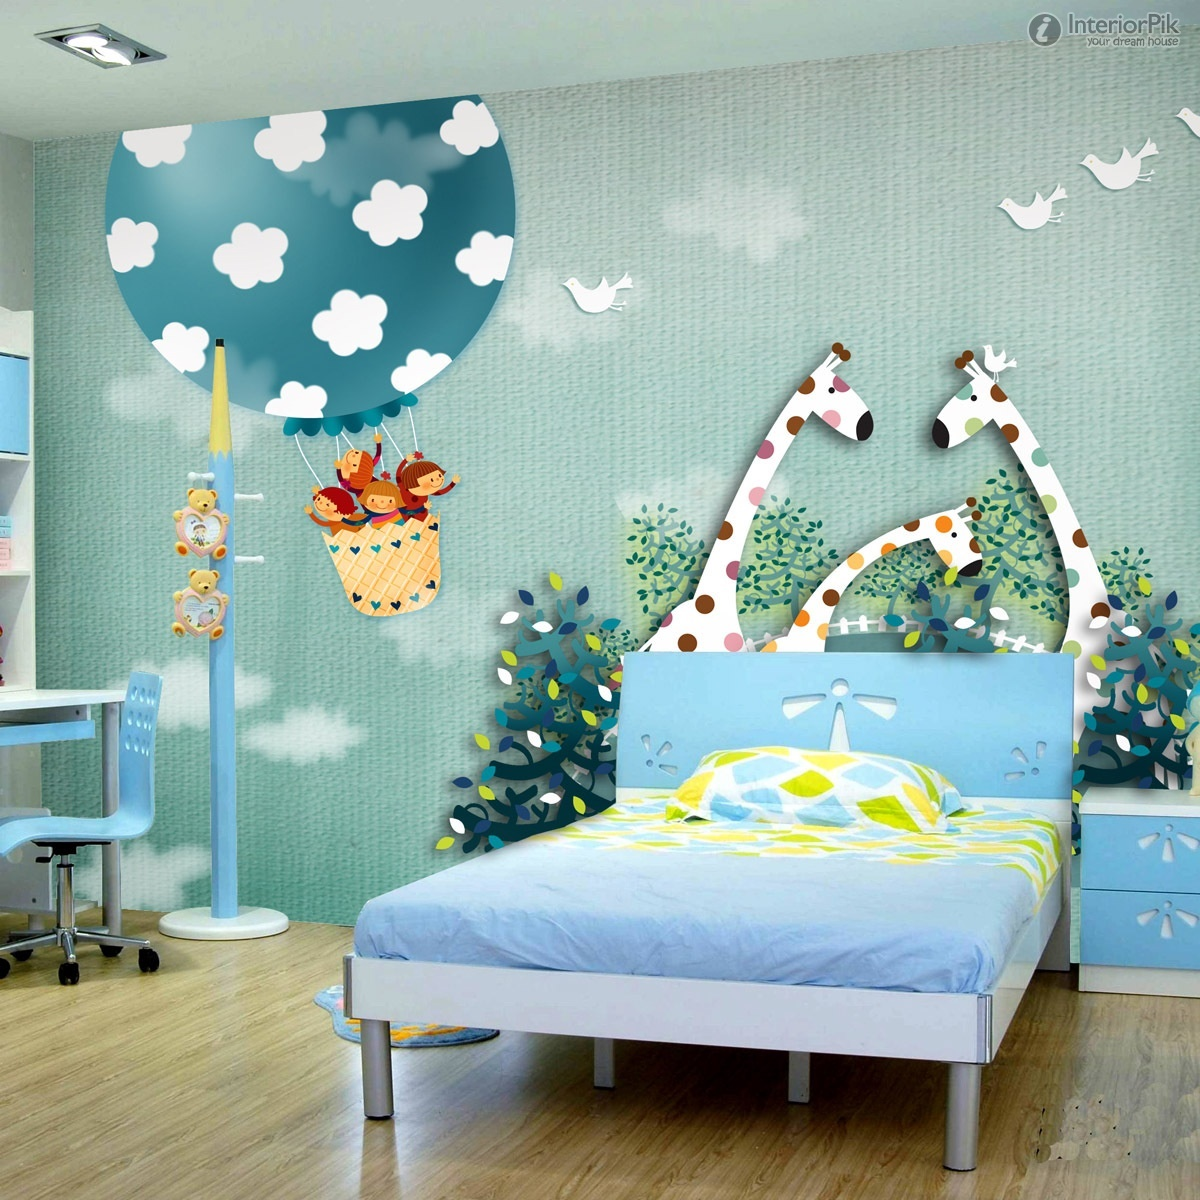 Childrens bedroom wallpaper ideas home decor uk for Bedroom wall mural designs